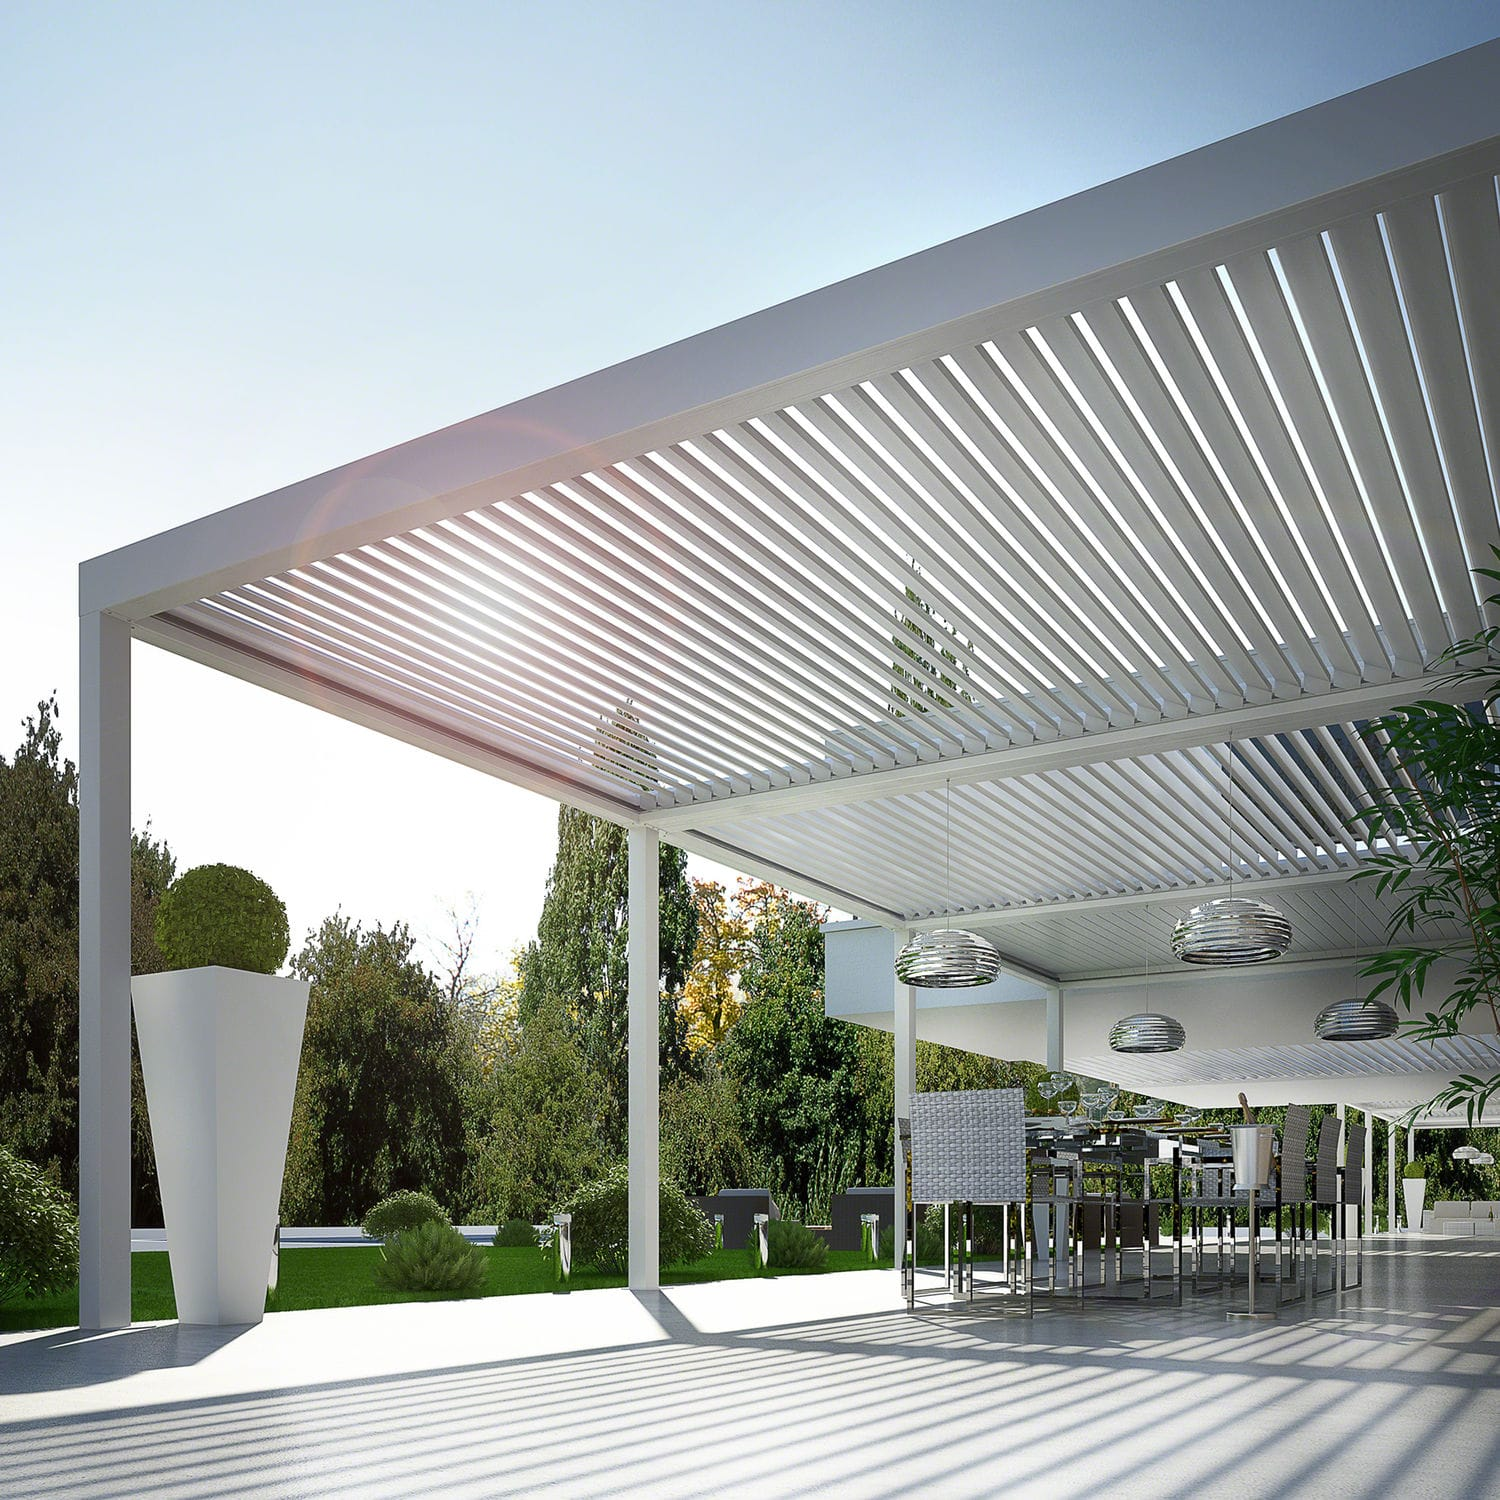 wall-mounted pergola / aluminum / with mobile slats / sun shade louvers -  BIOSHADE - Wall-mounted Pergola / Aluminum / With Mobile Slats / Sun Shade